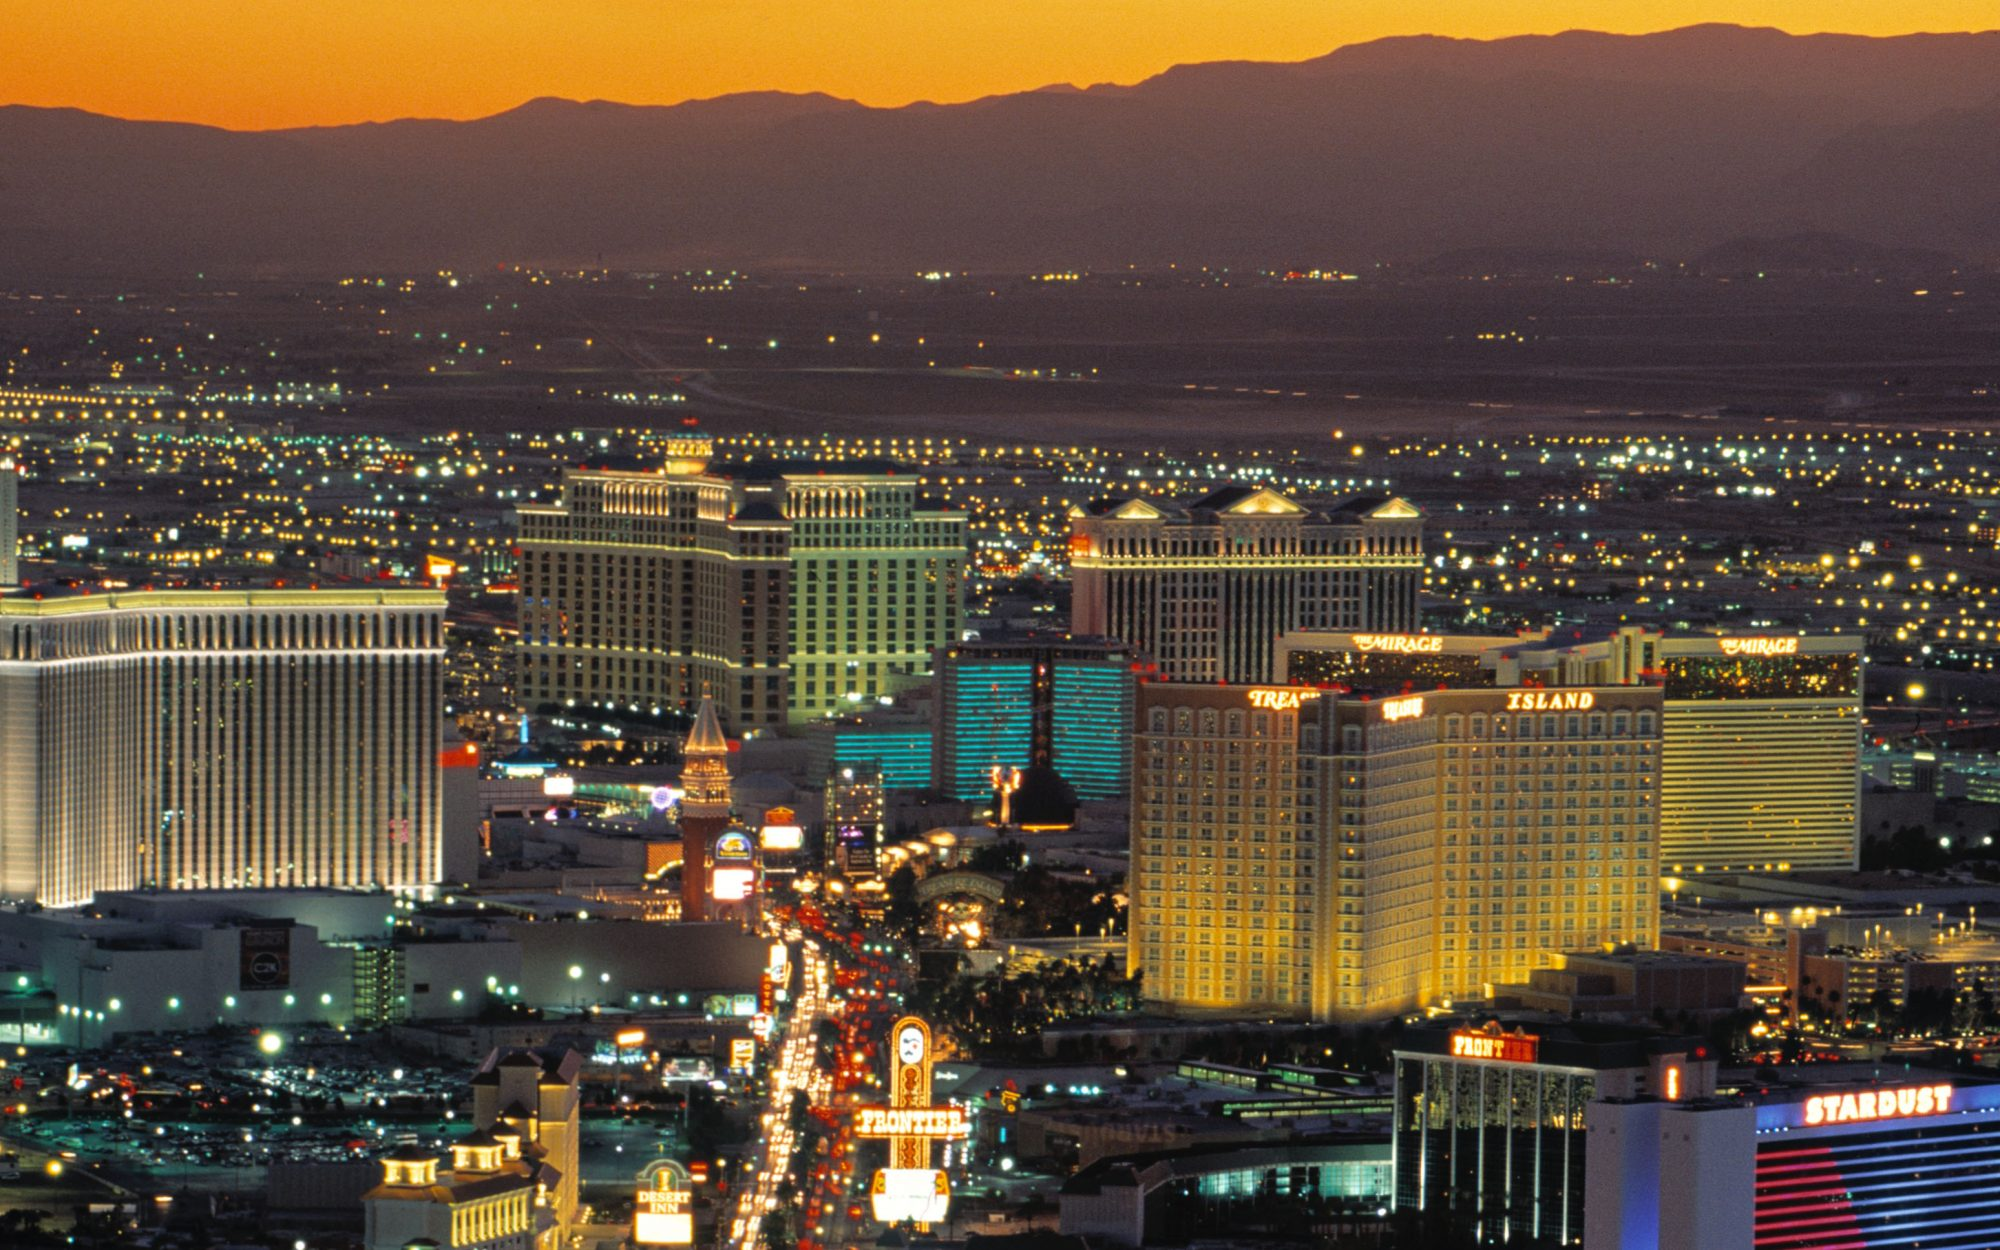 America's Most Romantic Cities: No. 11 Las Vegas